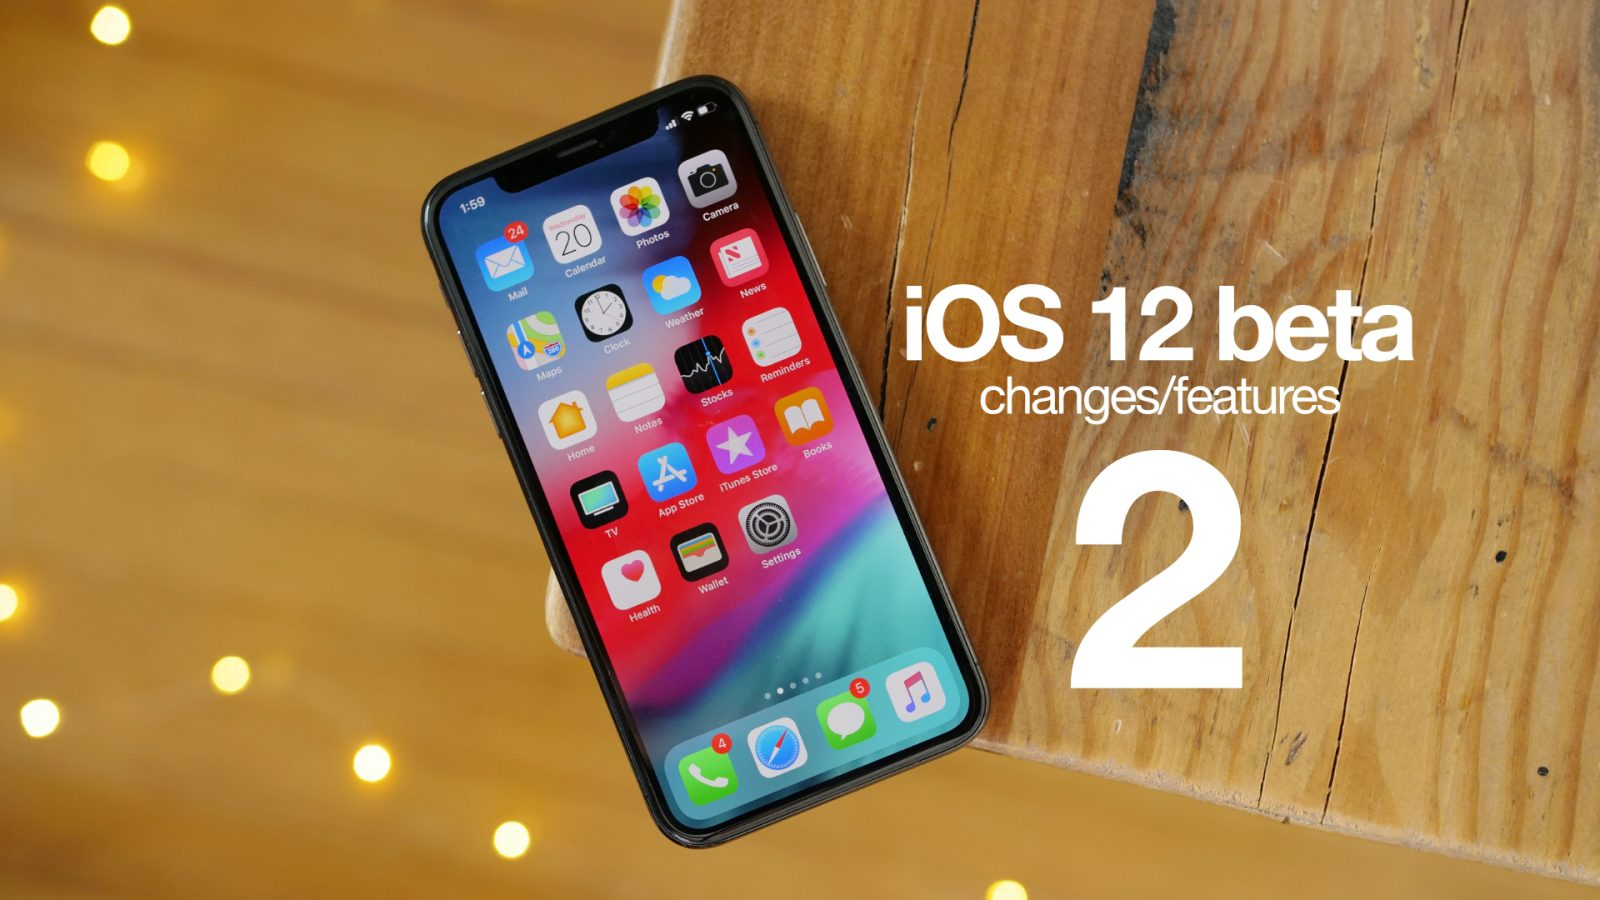 Hands-on: 50 iOS 12 beta 2 changes and features [Video] - 9to5Mac